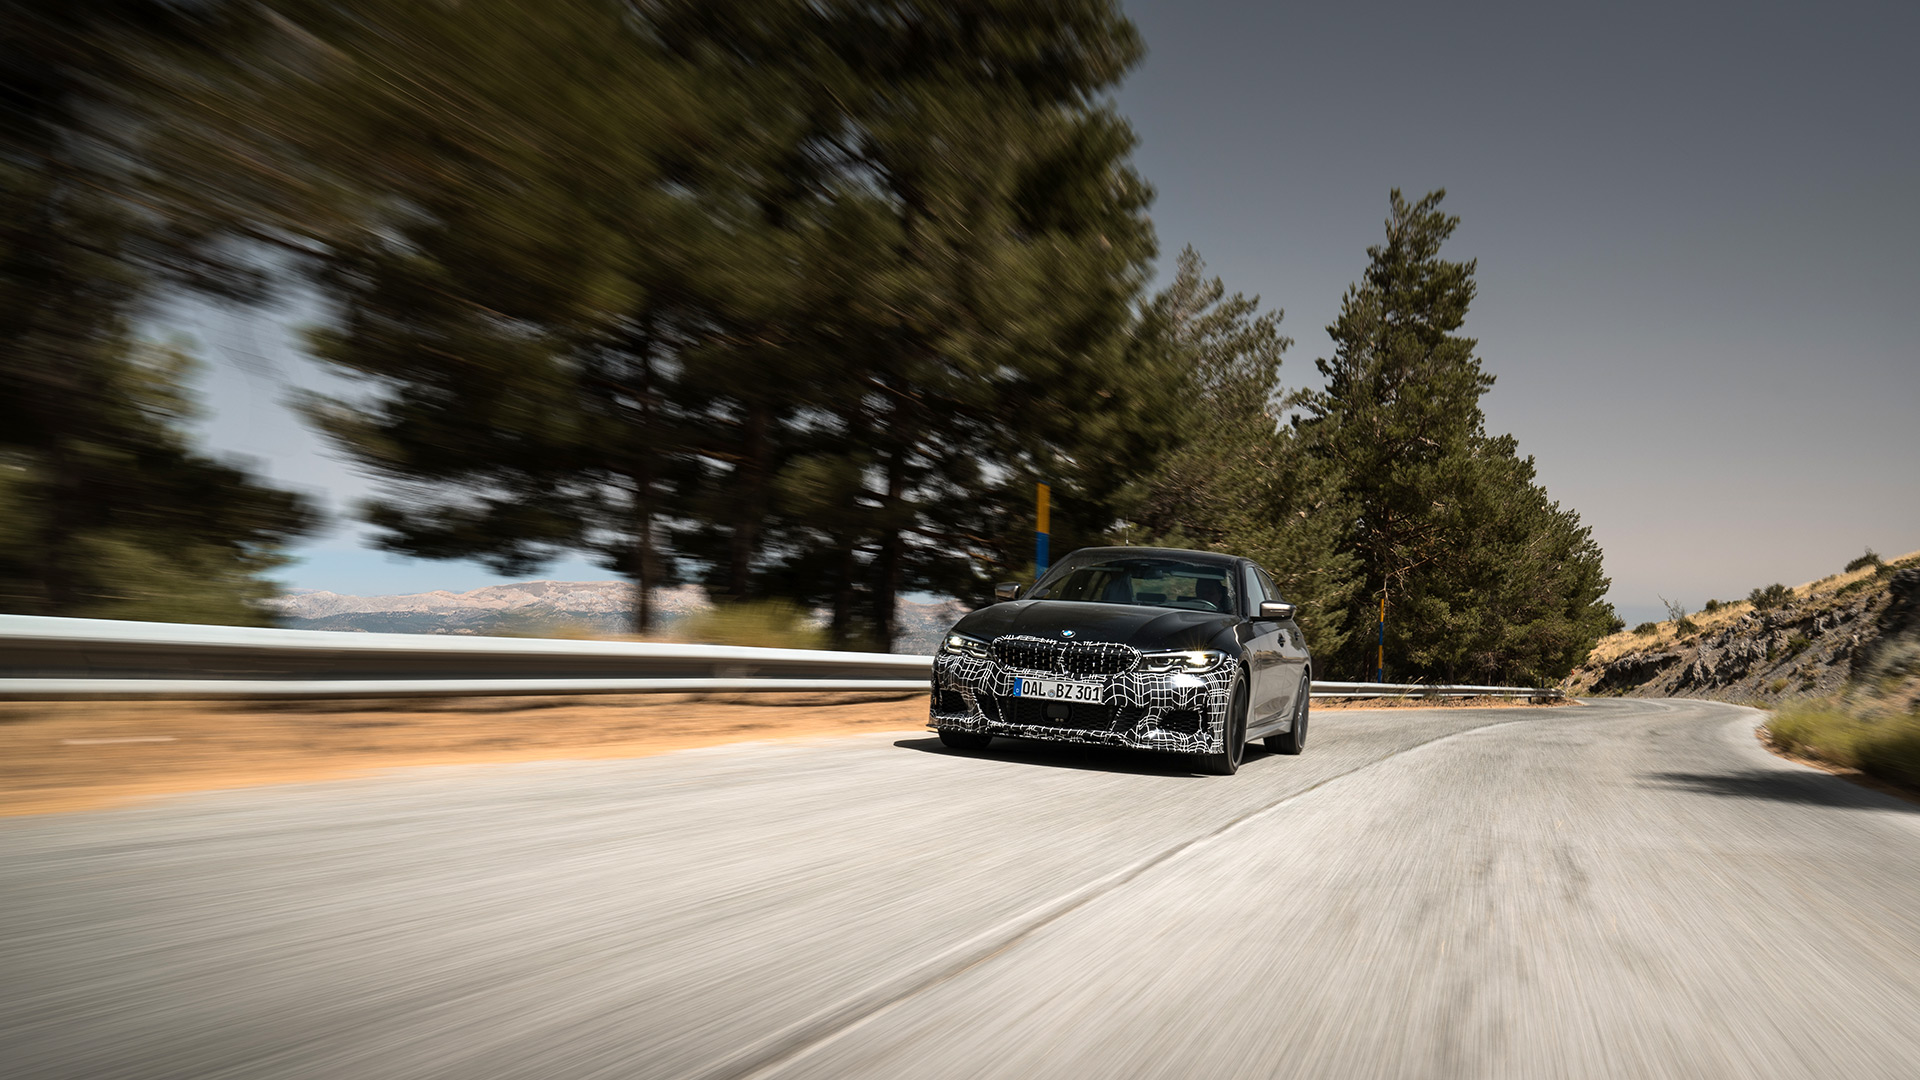 ALPINA explains the extensive pre-production testing phase